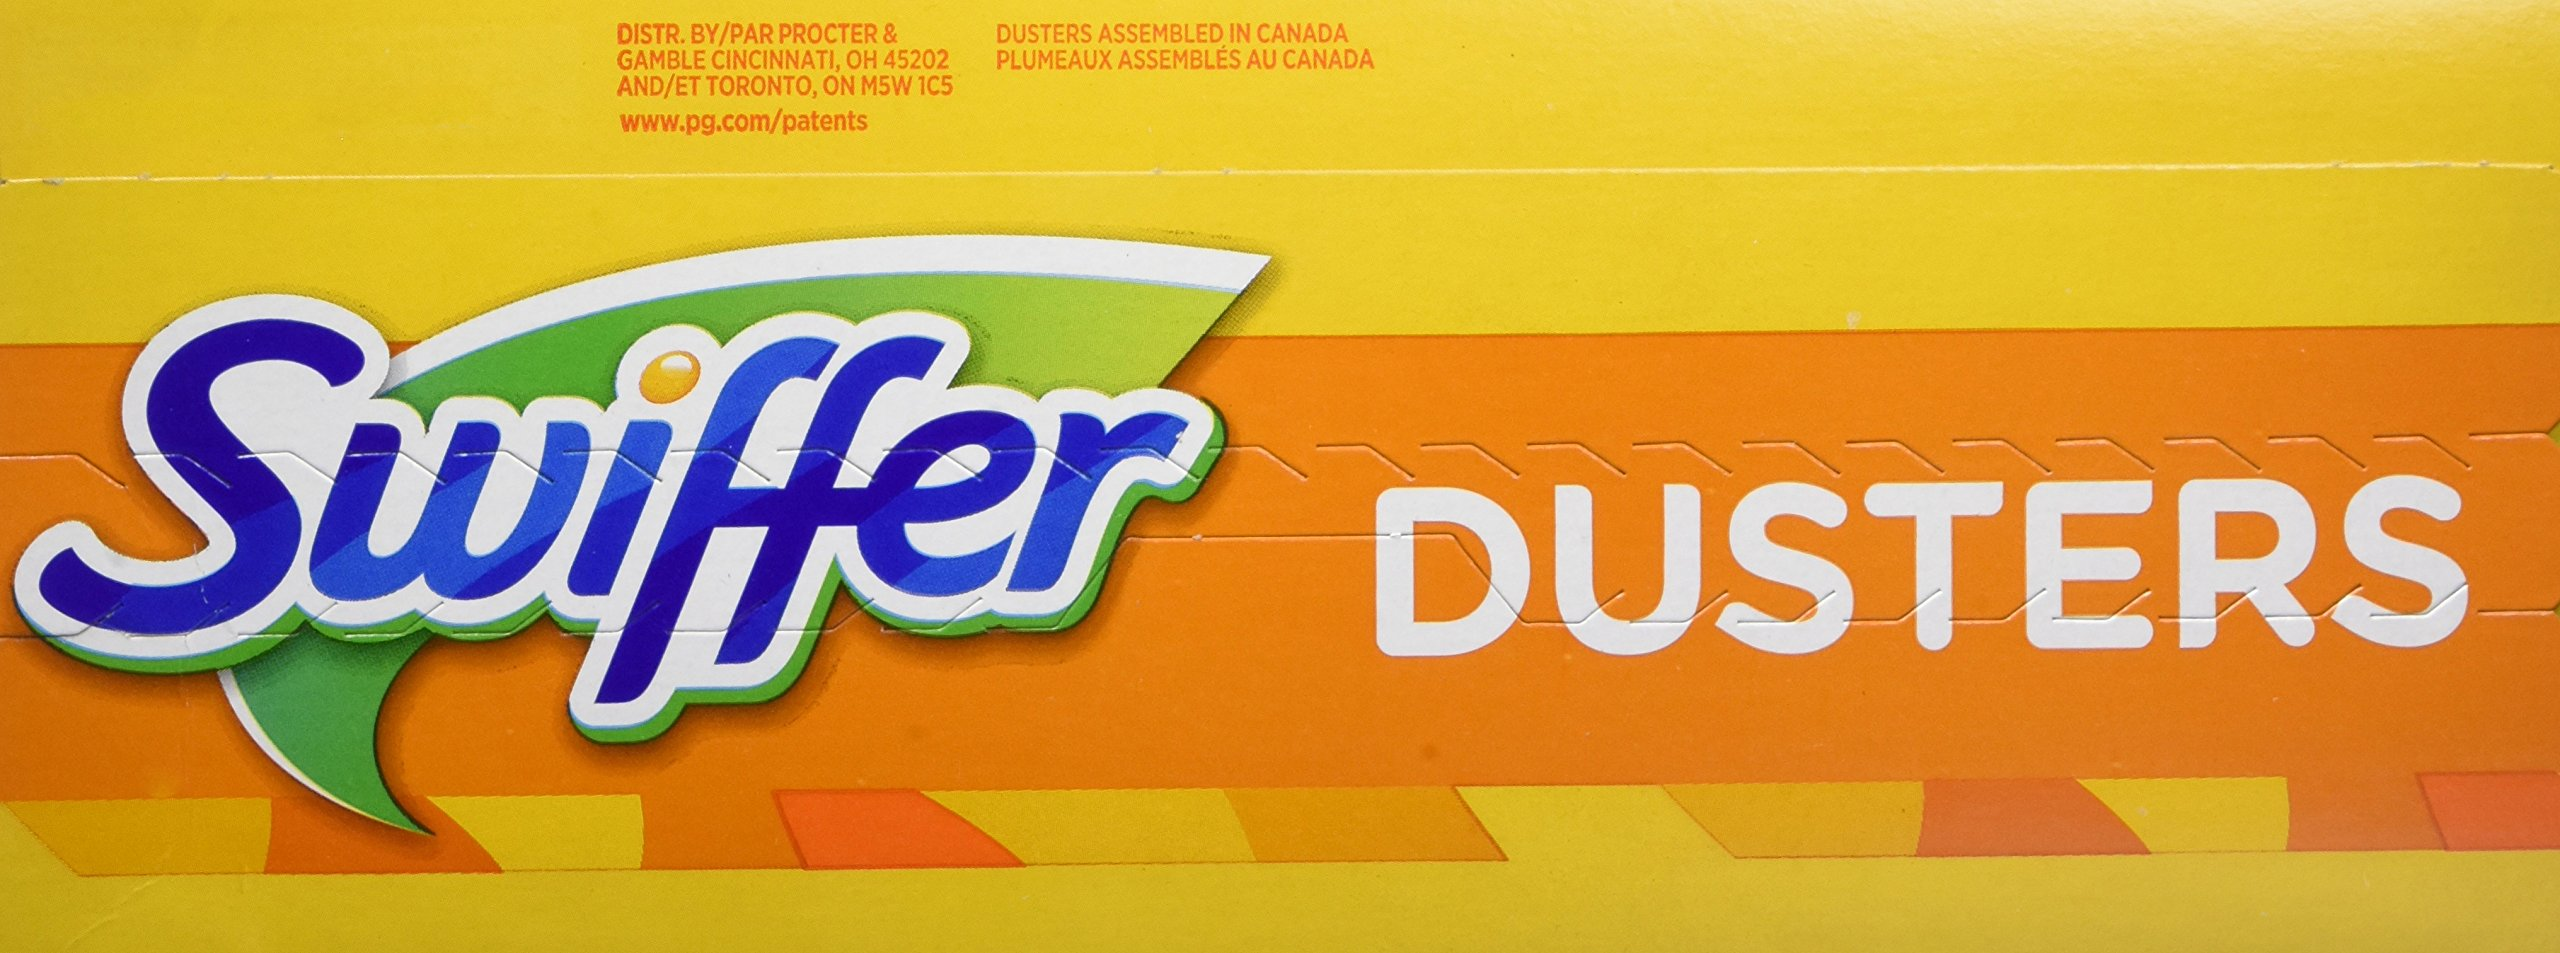 Swiffer Duster Refills, Unscented Dusters Refill, 16 Count, Swifter by Swiffer (Image #5)